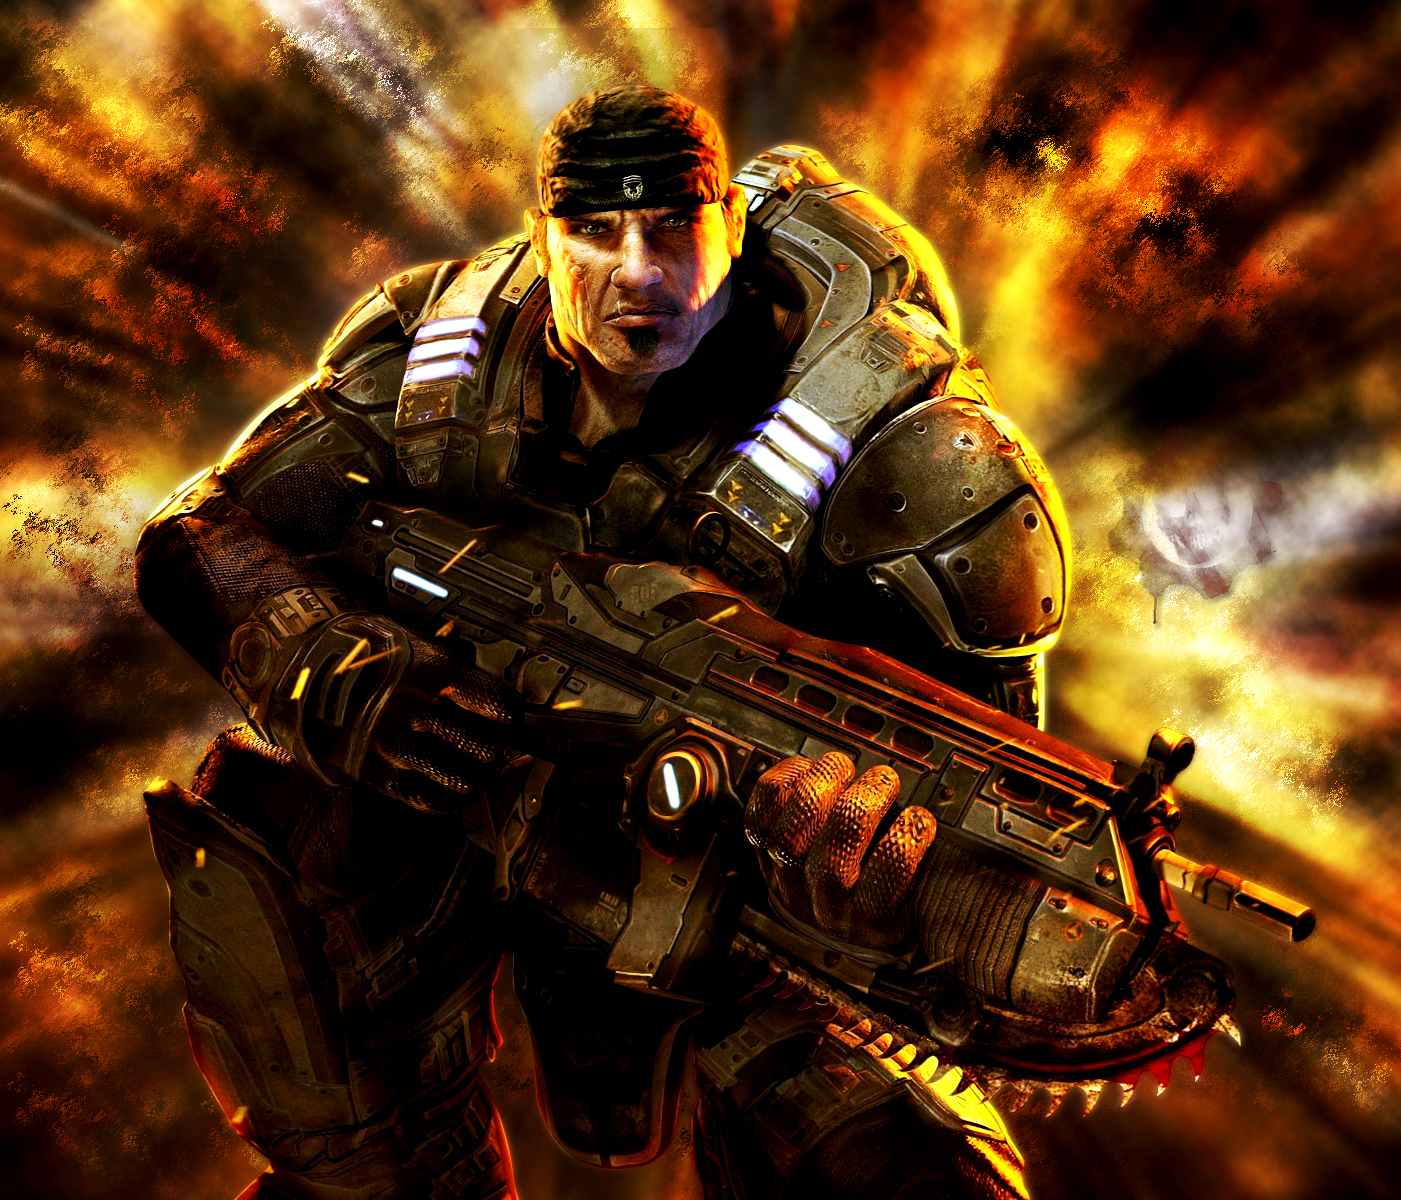 Lets Play Some Gears